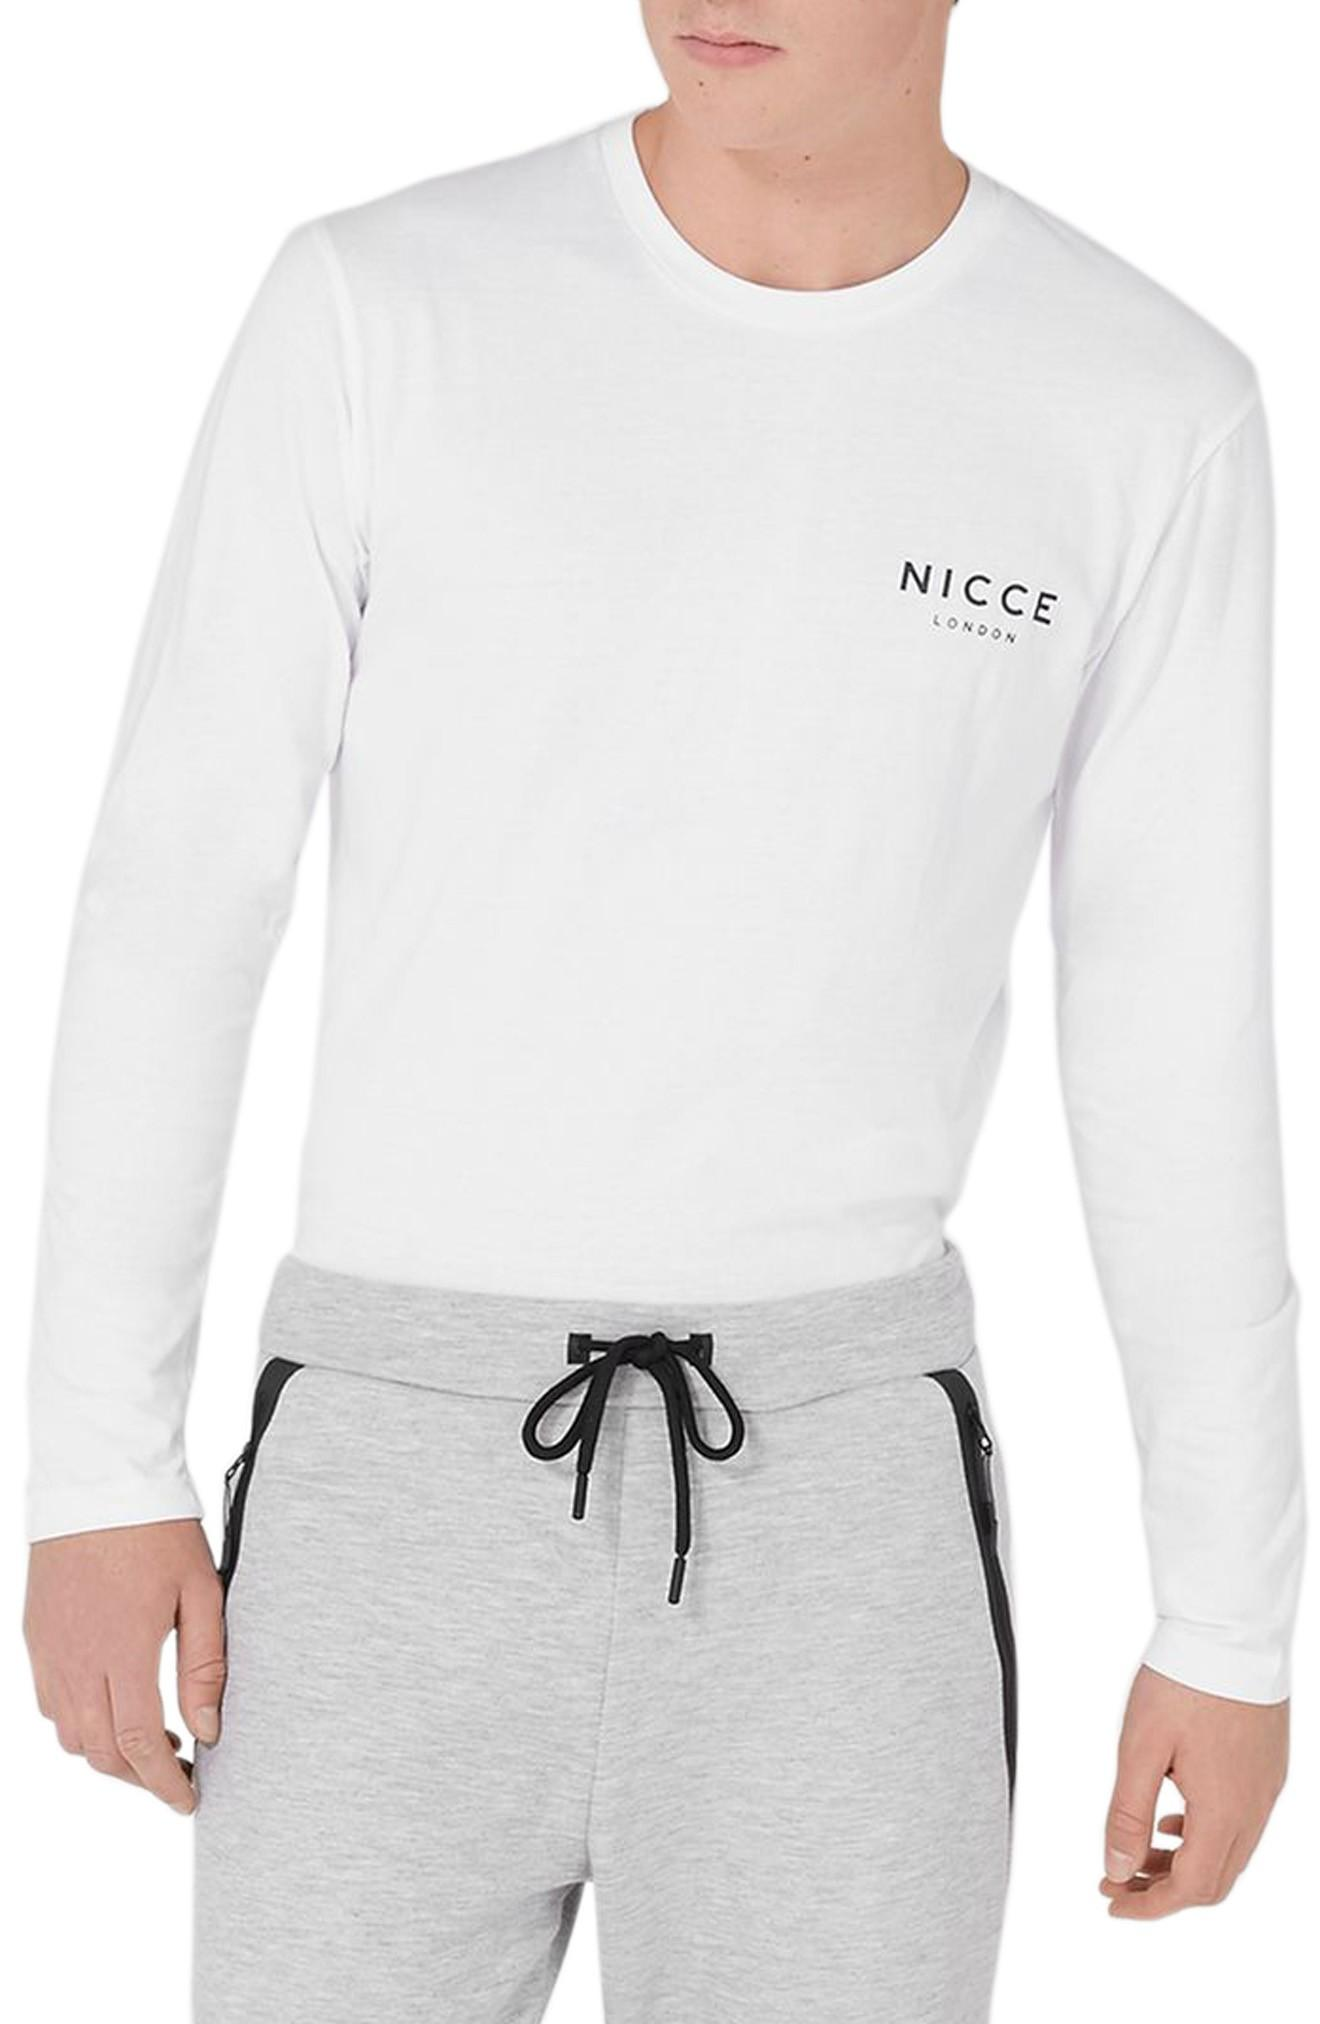 Topman Nicce Graphic Long Sleeve T-shirt In White